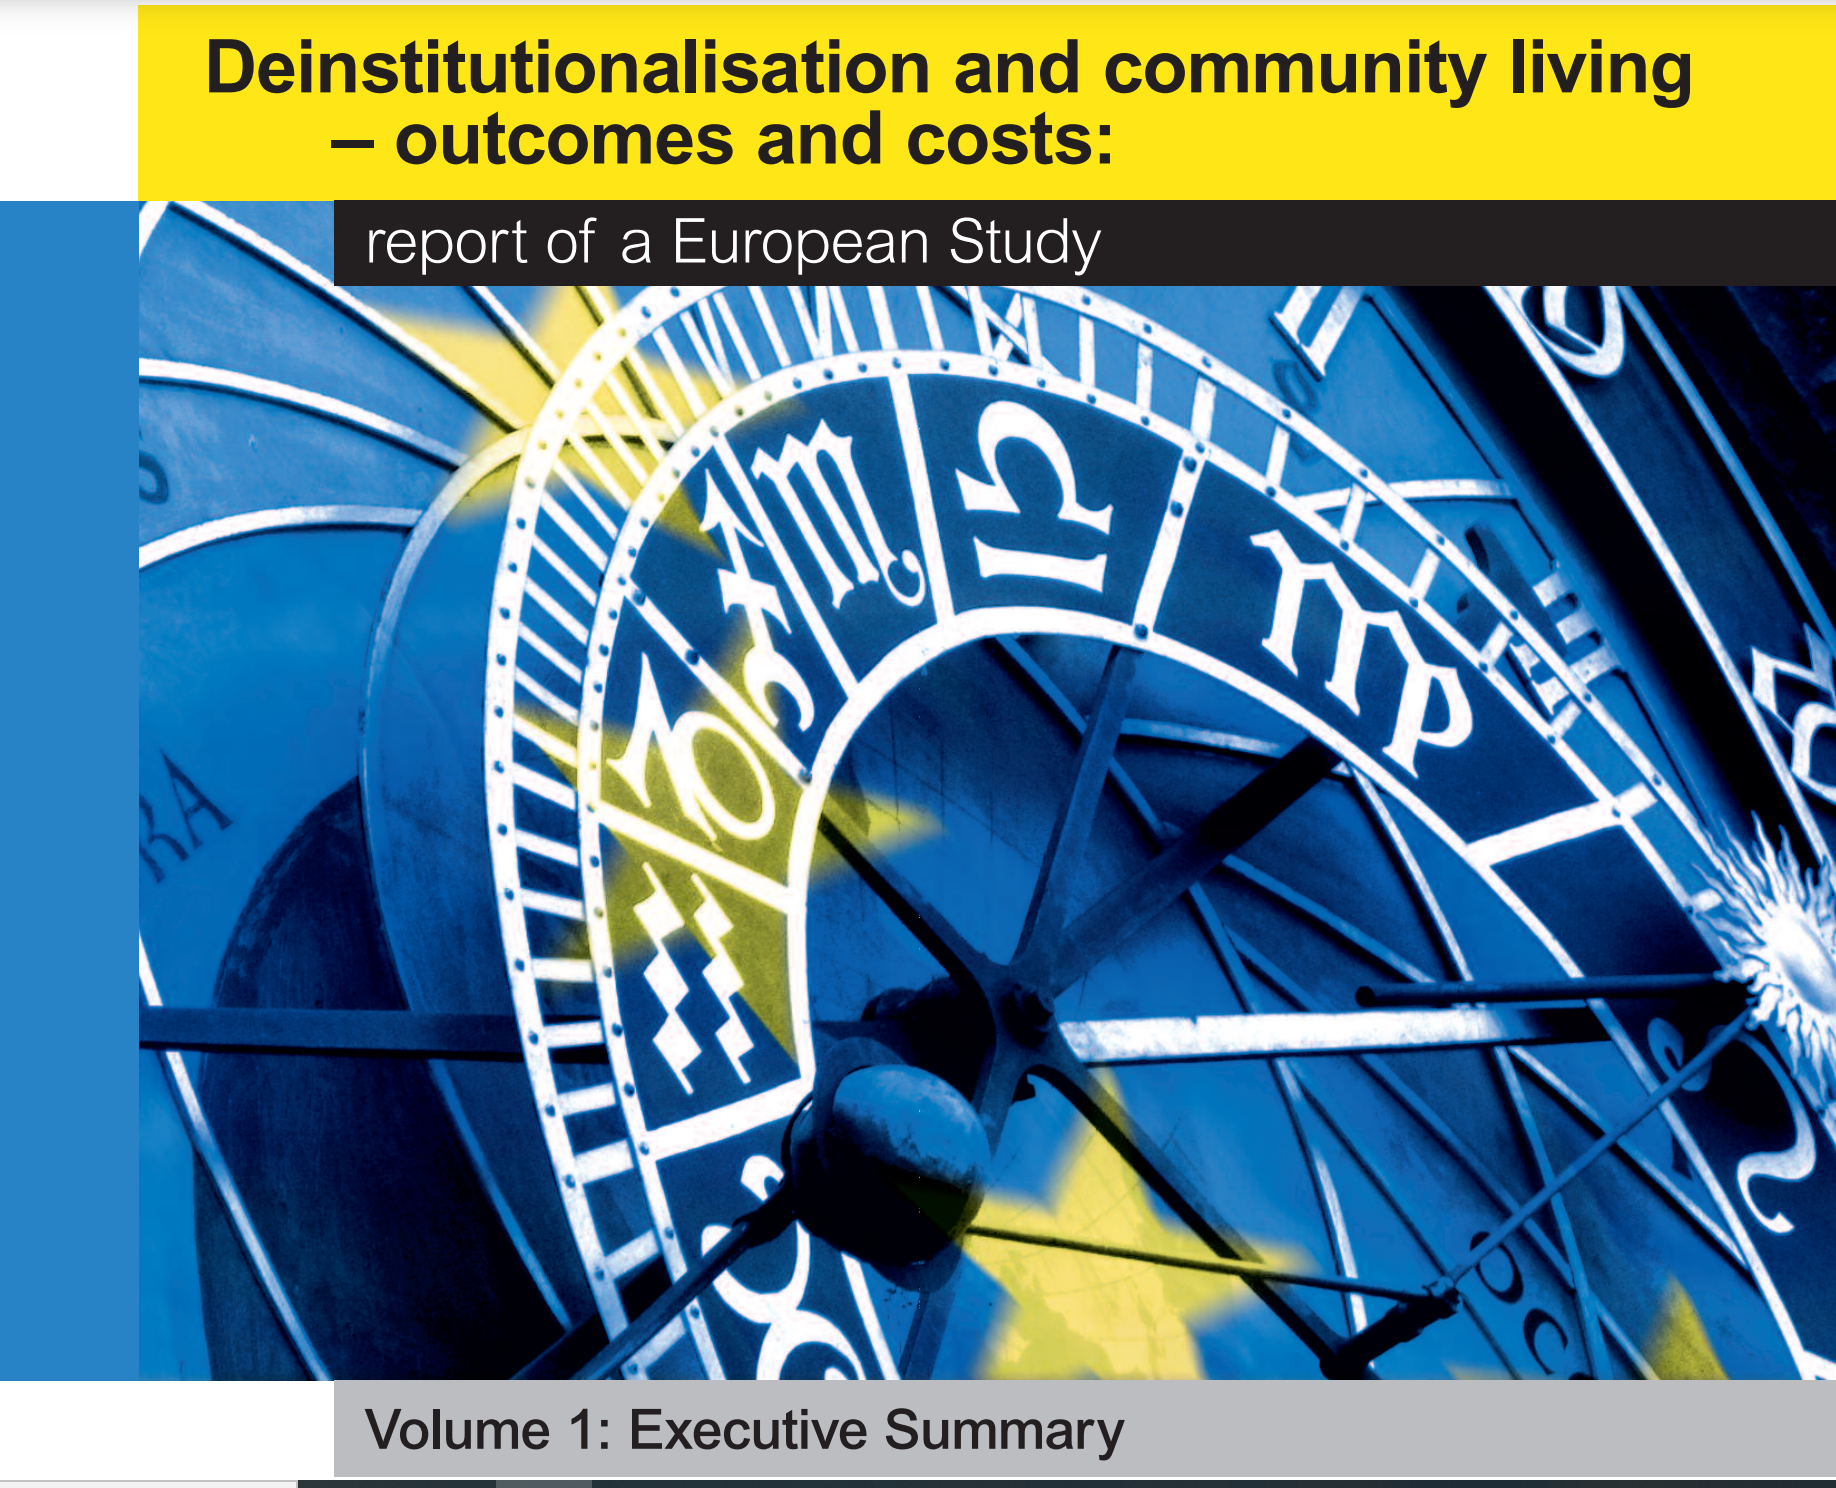 Cover art for: Deinstitutionalisation and community living – outcomes and costs: Report of a European Study.